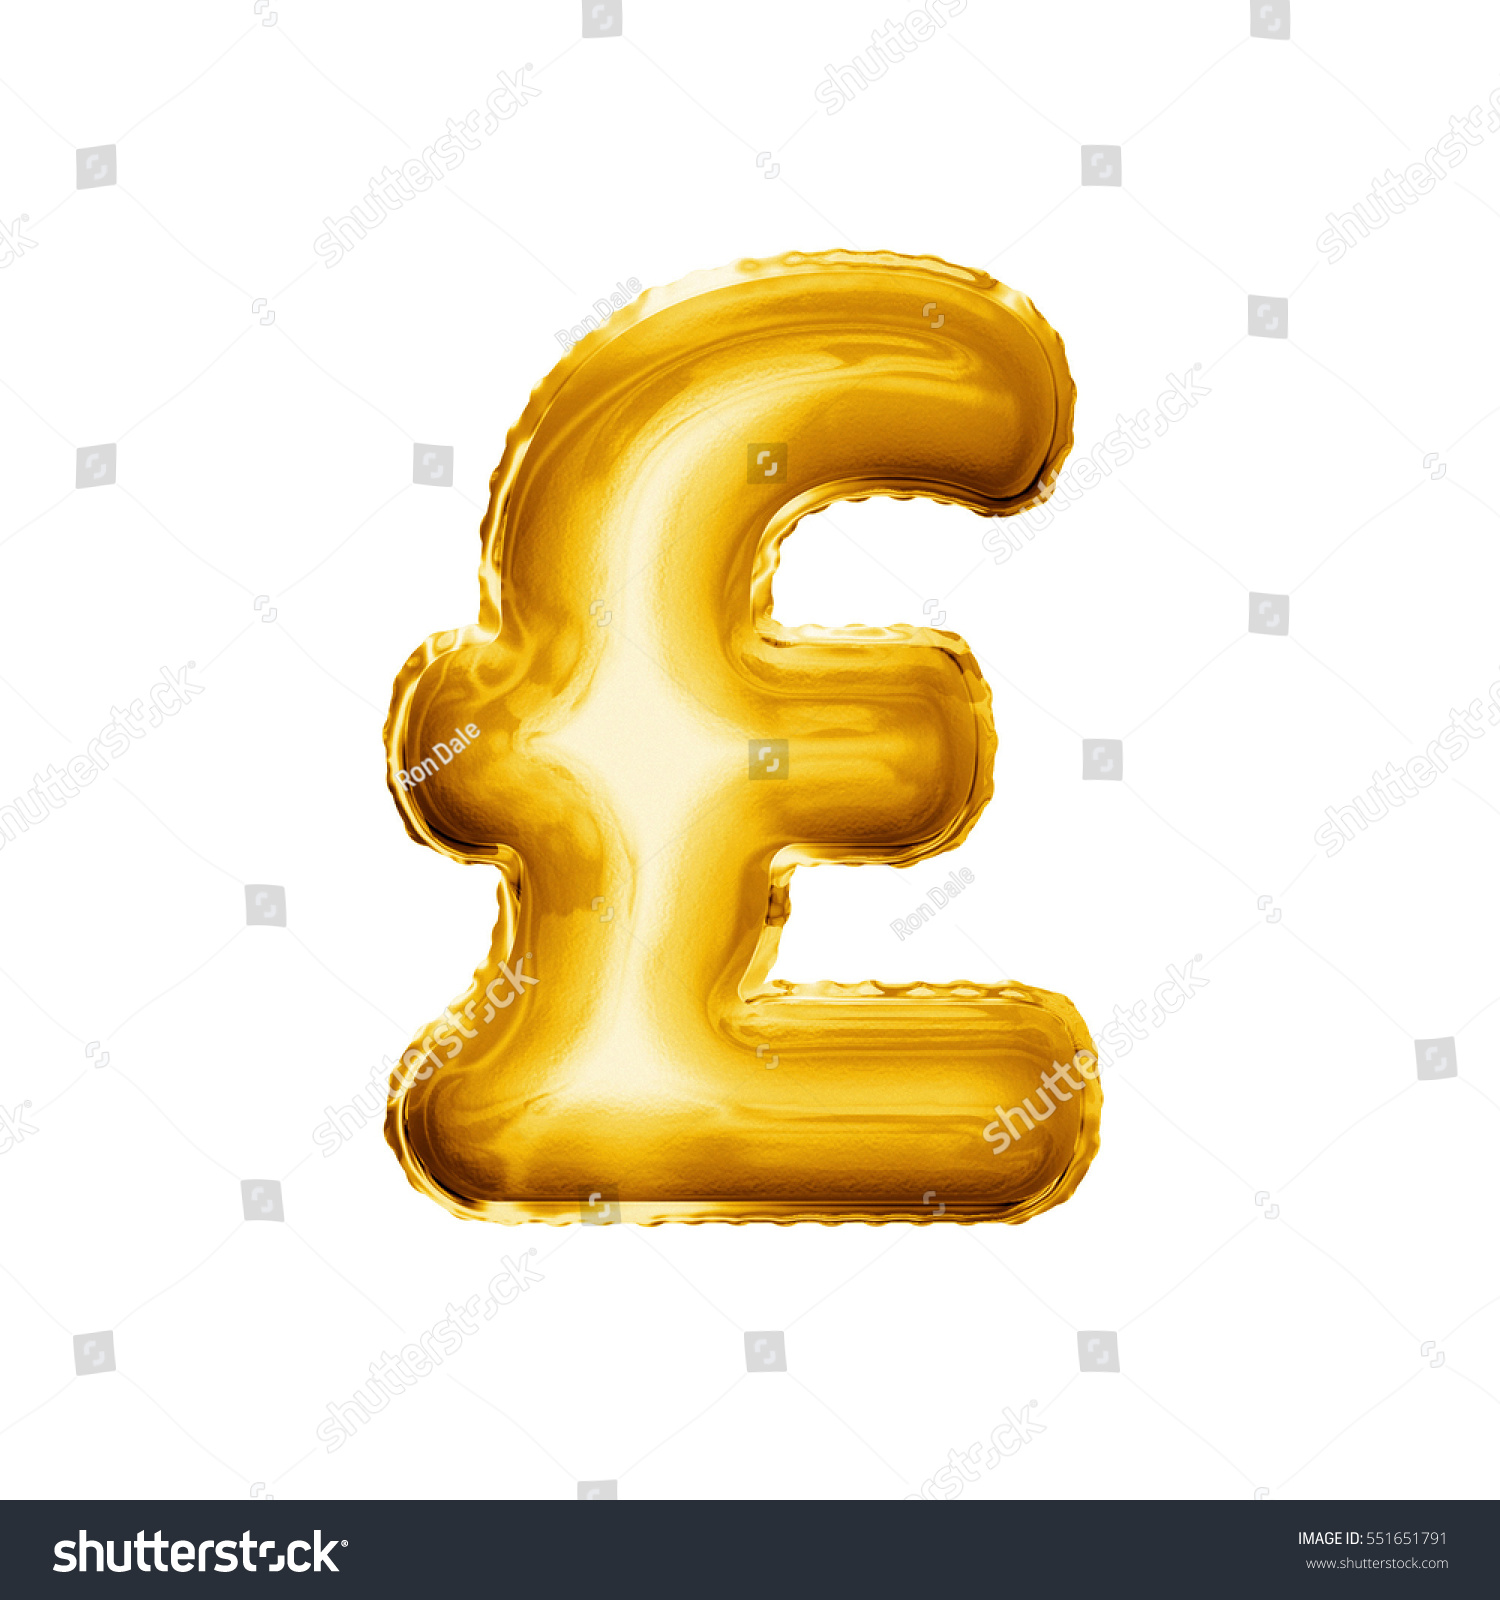 Balloon Pound Currency Symbol Realistic 3 D Stock Illustration